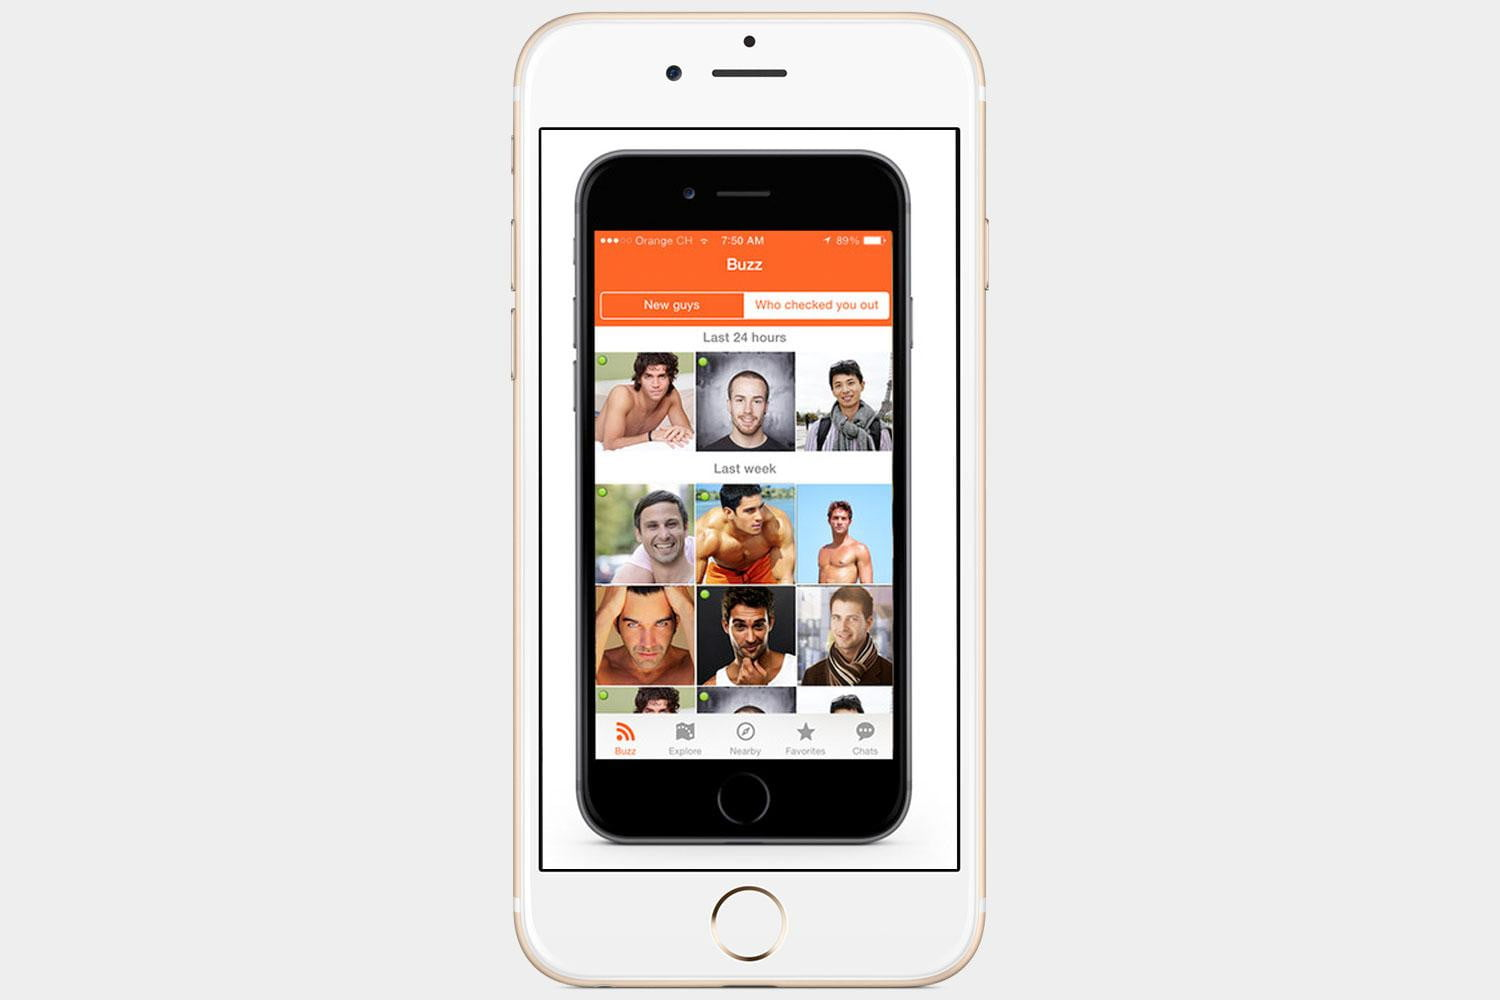 Iphone best dating apps